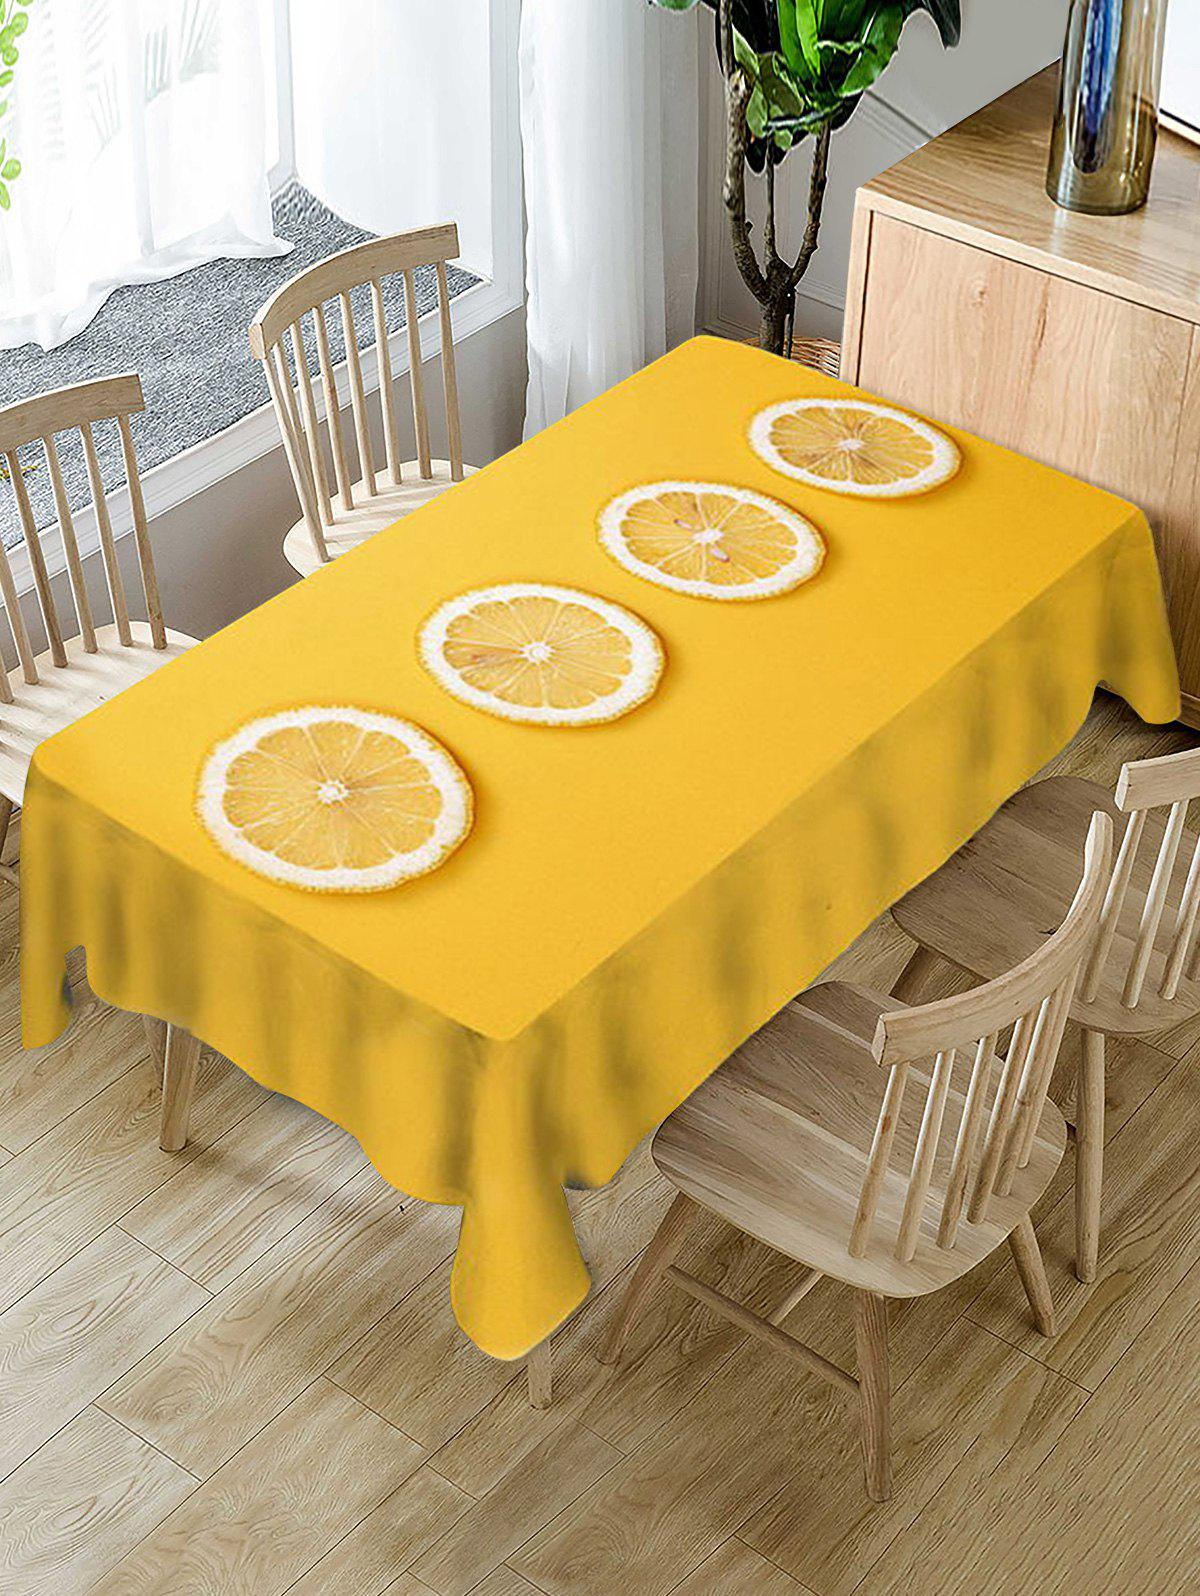 Nappe de Table Décorative à Imprimé Tranches de Citron